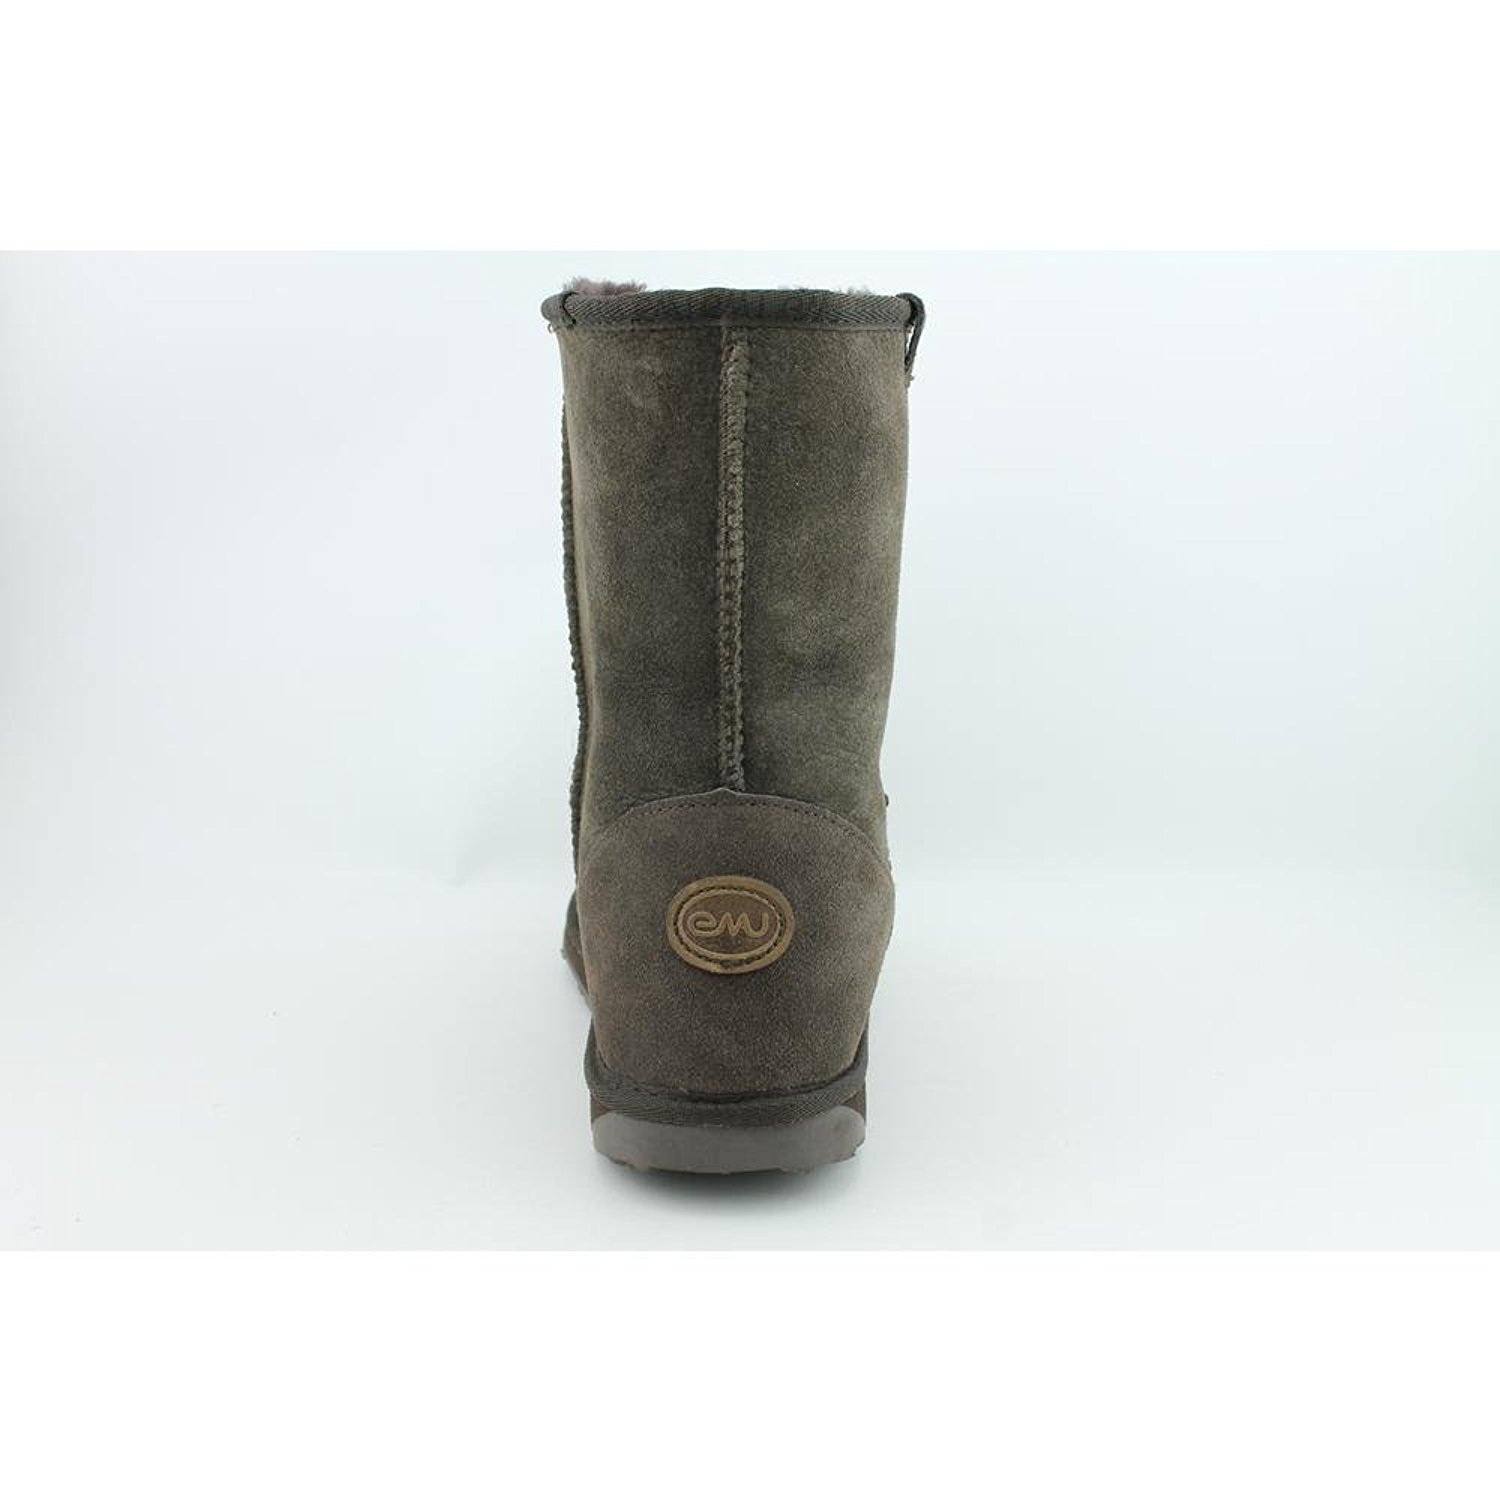 EMU Australia Womens Stinger Lo Winter Real Sheepskin Boots